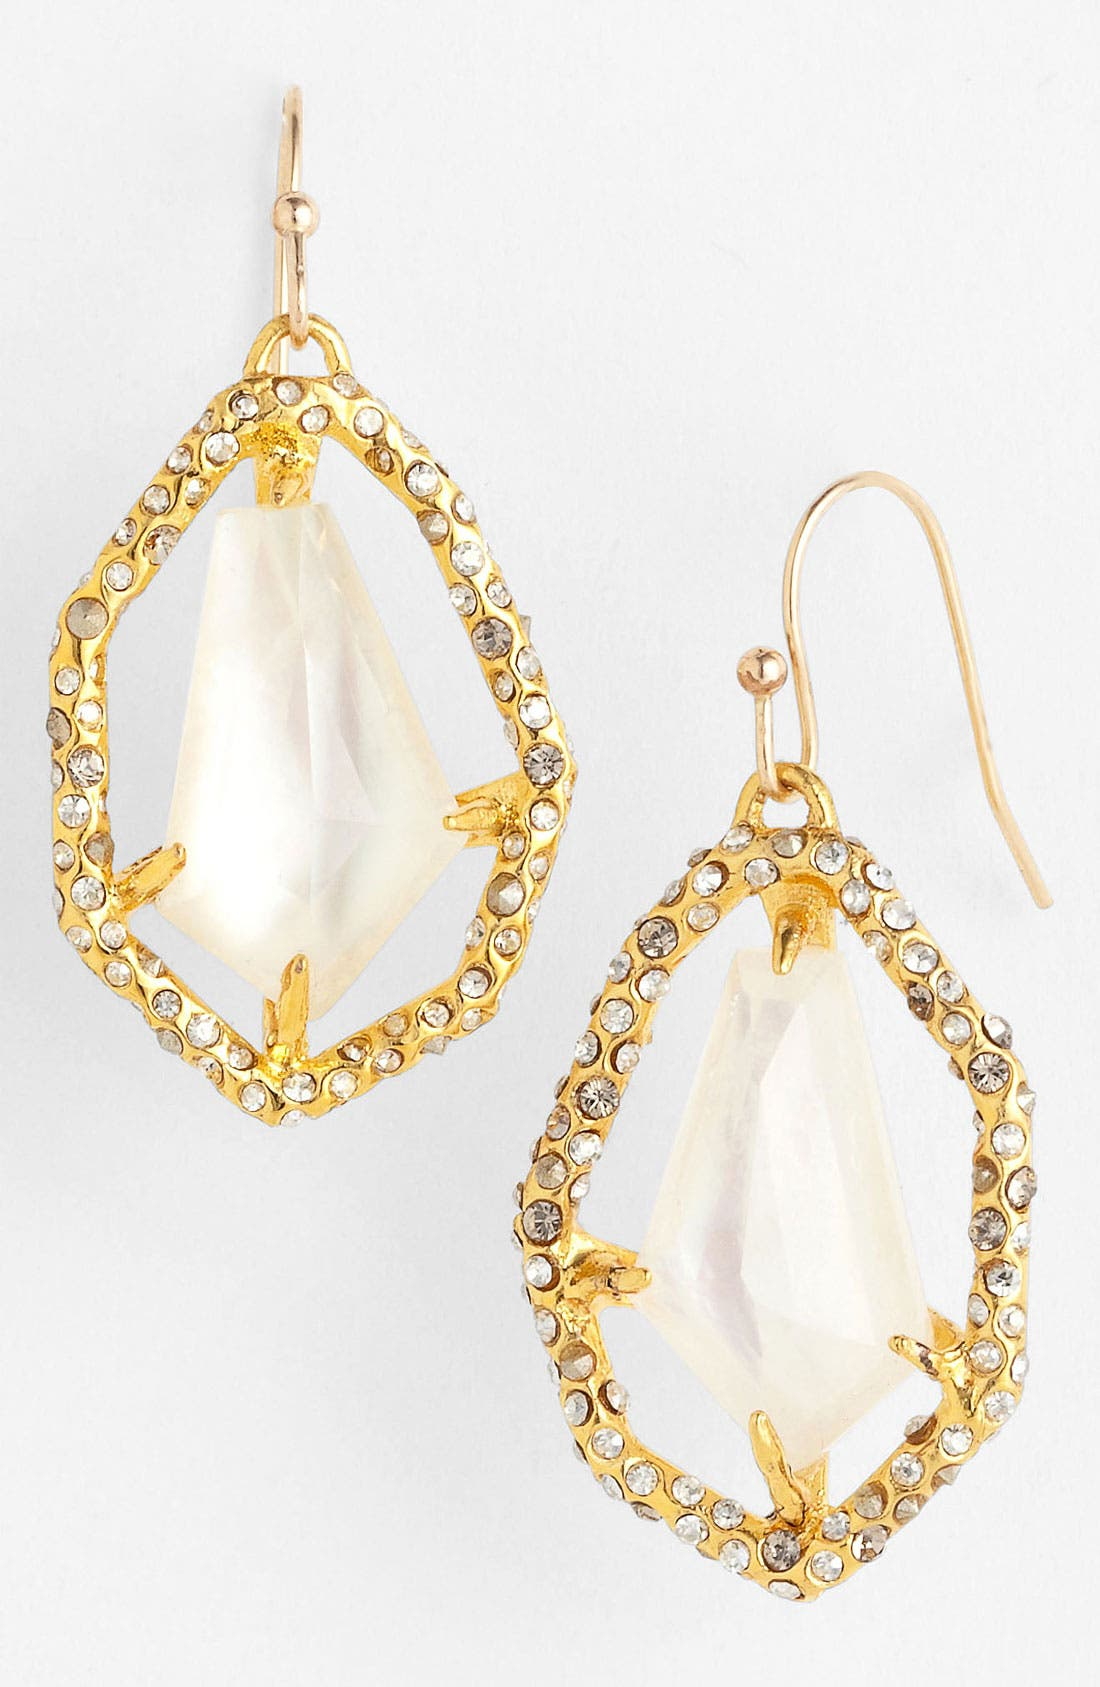 Alternate Image 1 Selected - Alexis Bittar 'Miss Havisham - Bel Air' Drop Earrings (Nordstrom Exclusive)